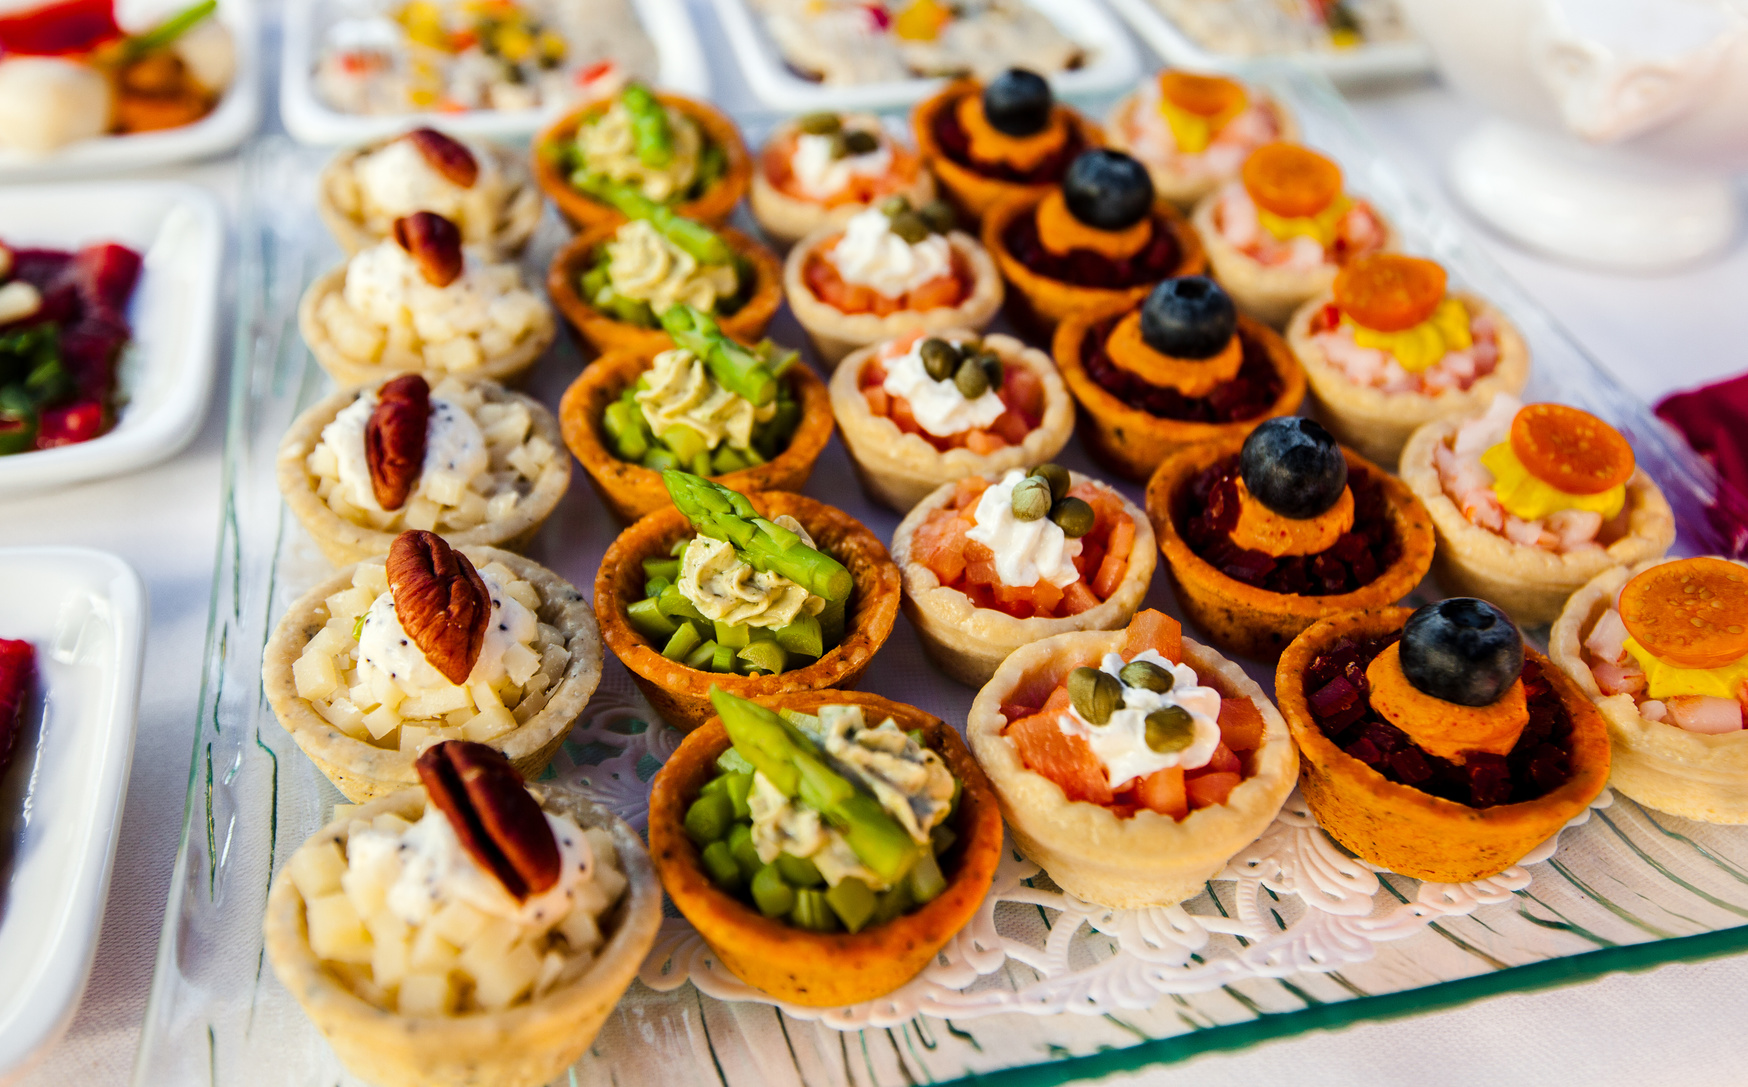 Food waste in the catering sector umweltbundesamt for Canape aperitif marmiton